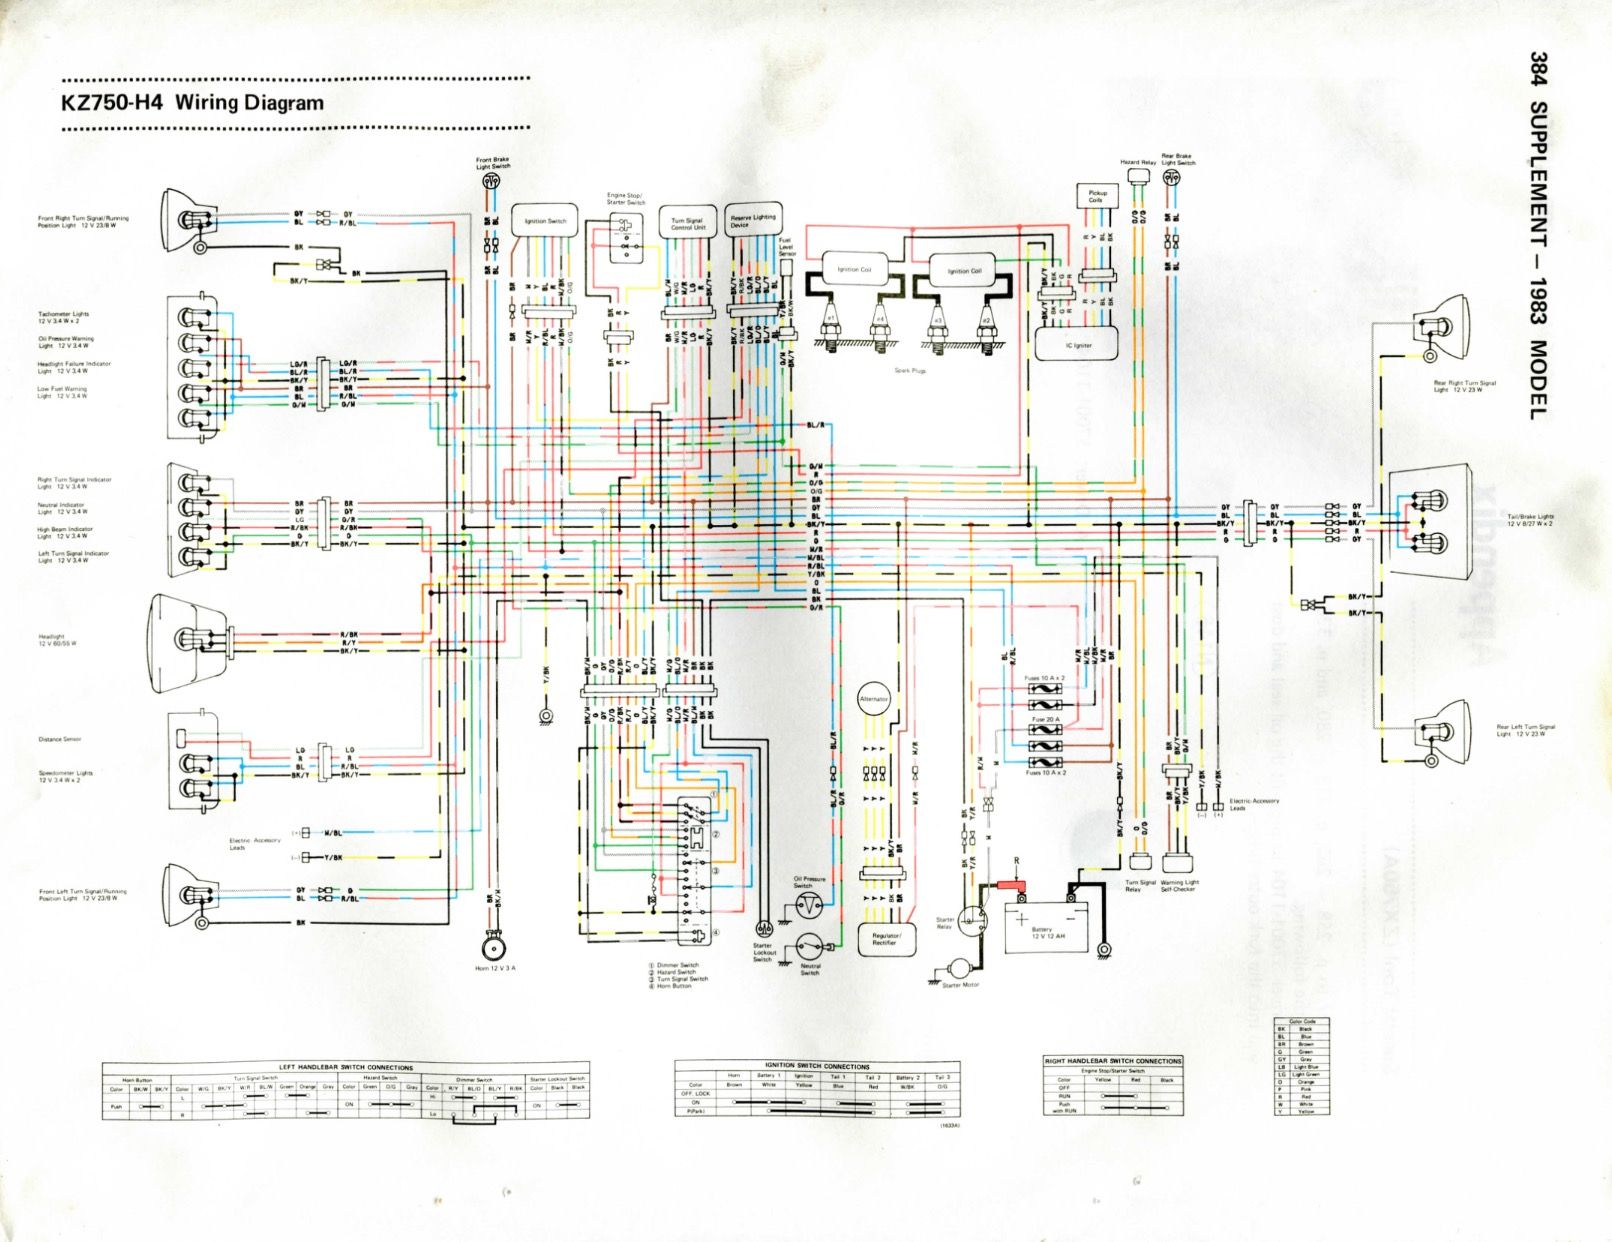 medium resolution of kawasaki kz750 wiring diagram wiring diagram expert 1978 kawasaki k z 750 wiring diagram